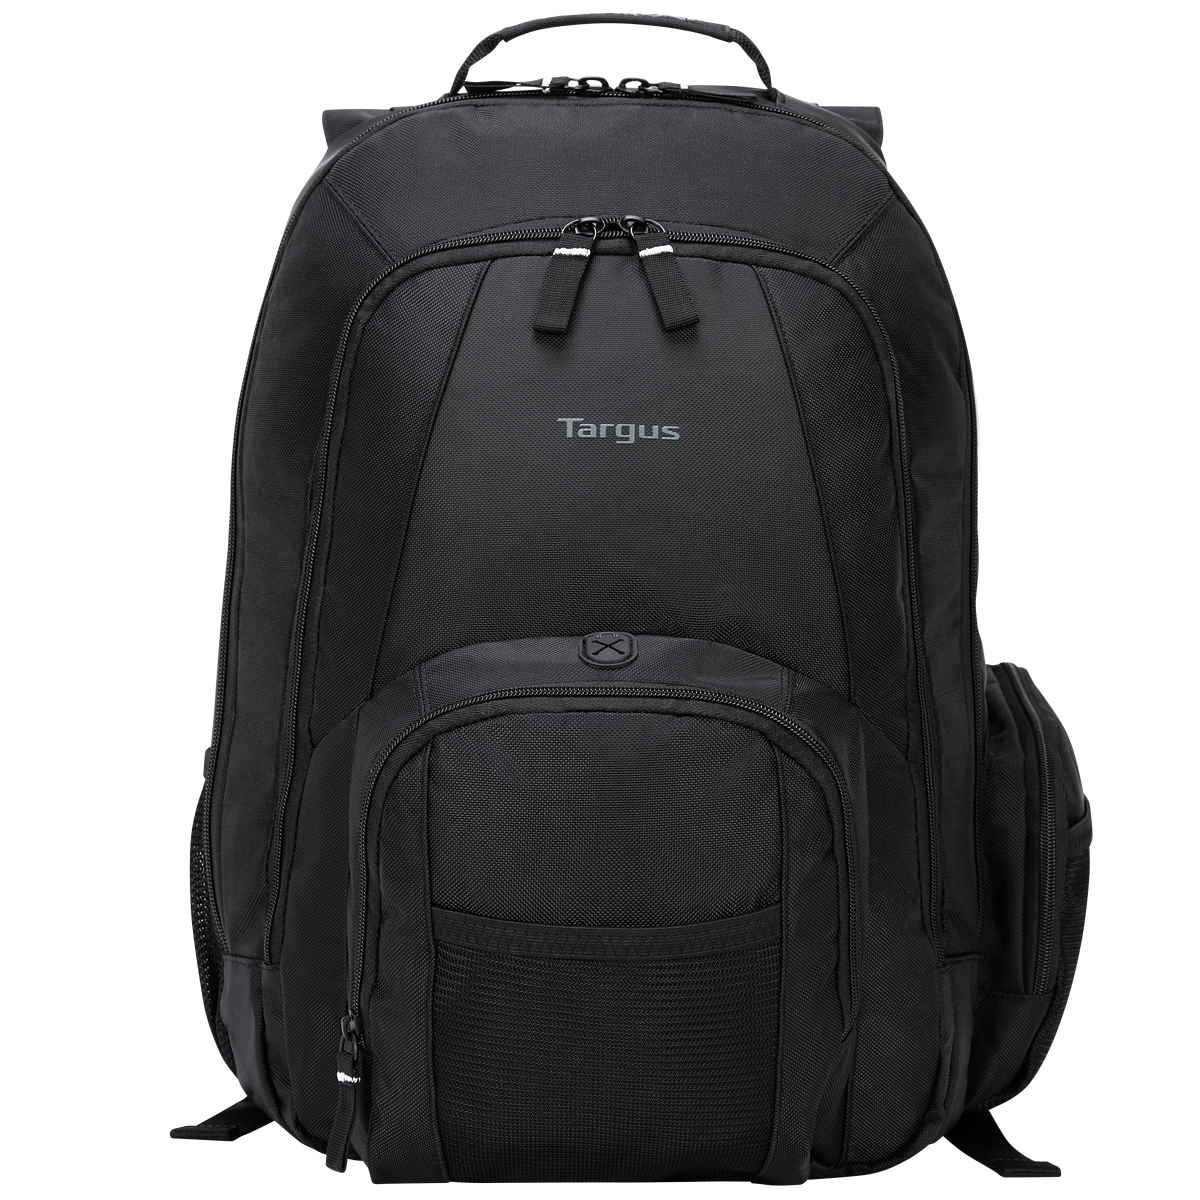 "16"" Groove Laptop Backpack - CVR600 - Black: Backpacks: Targus"